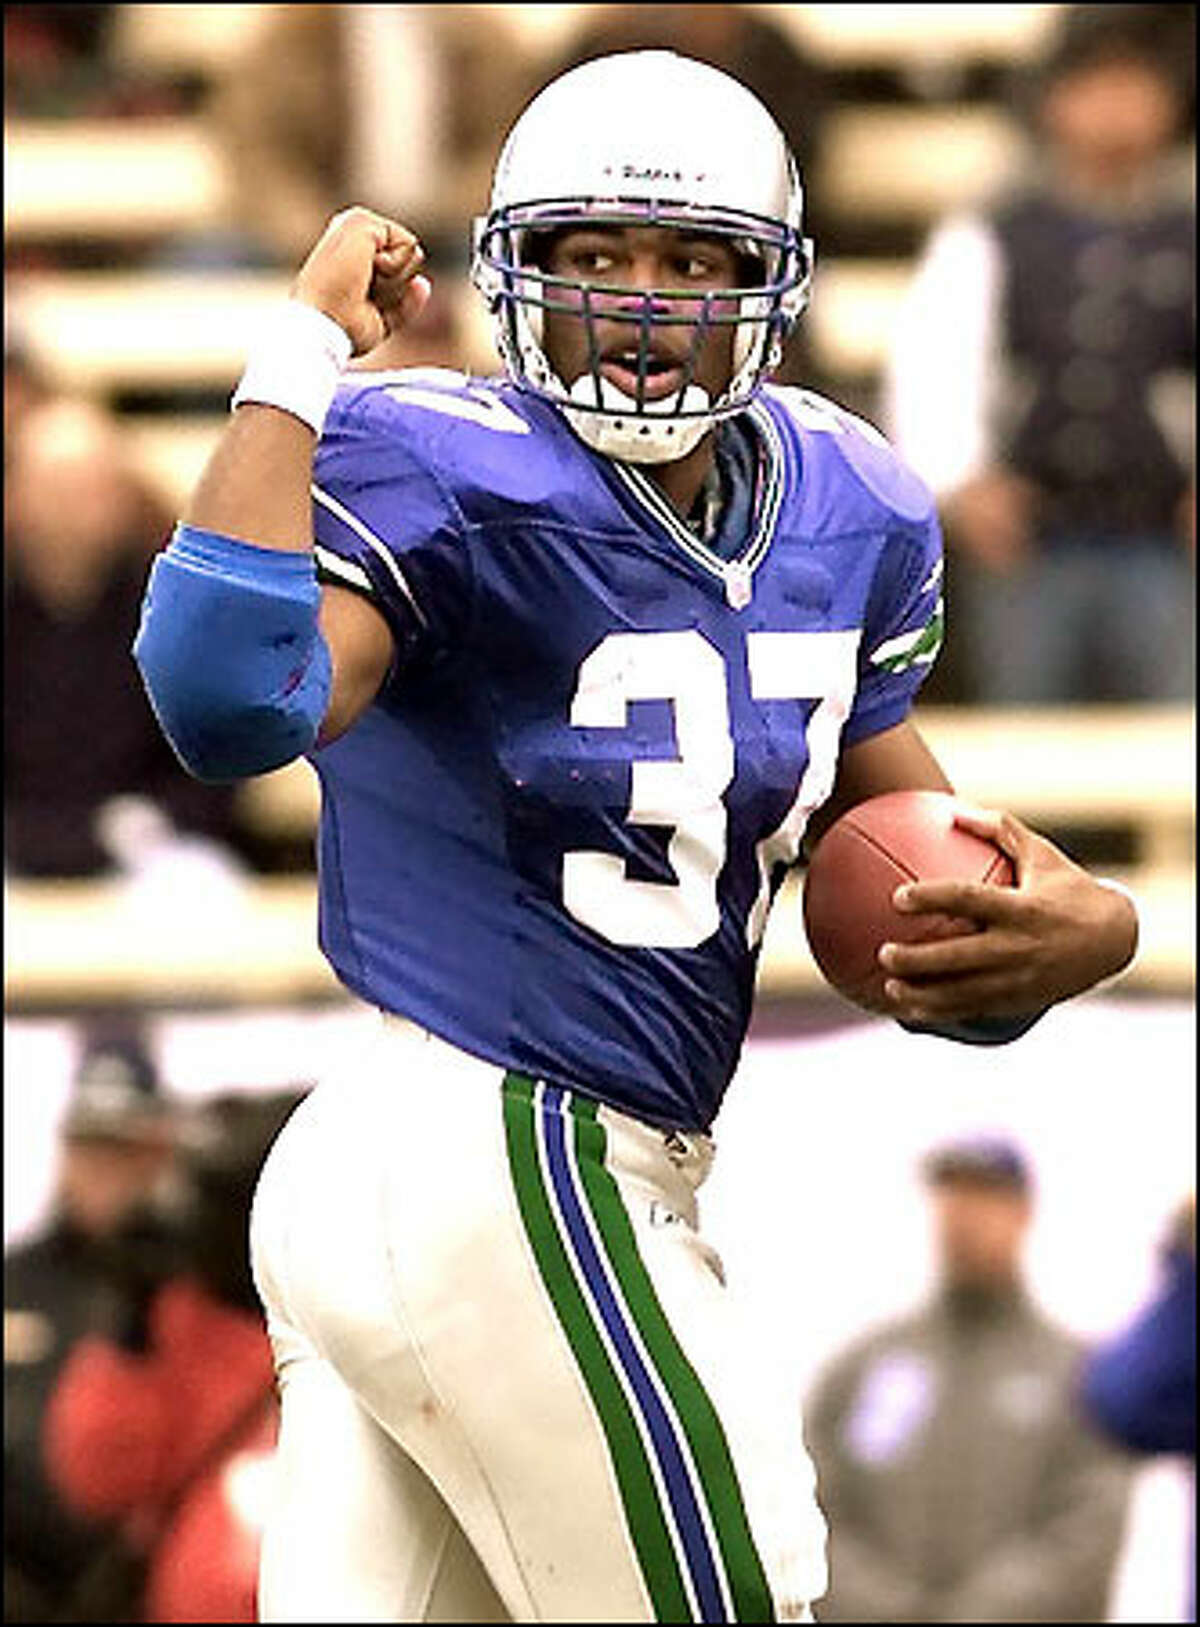 Seahawks' Shaun Alexander scores from one yard out against the Chargers in the first quarter of play at Husky Stadium.